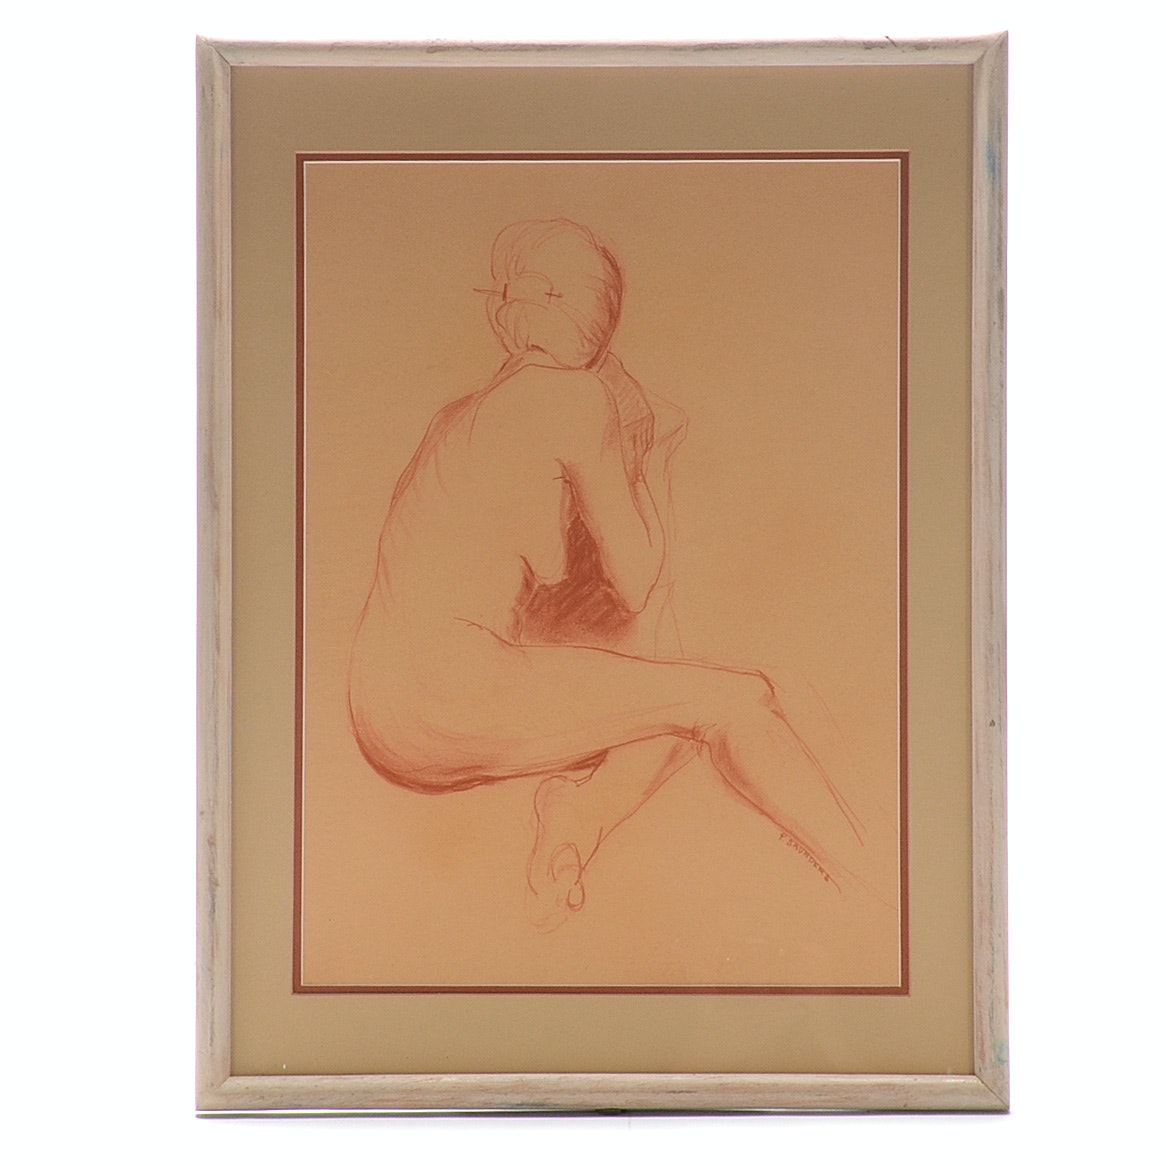 P. Saunders Original Red Conté Figure Drawing on Paper